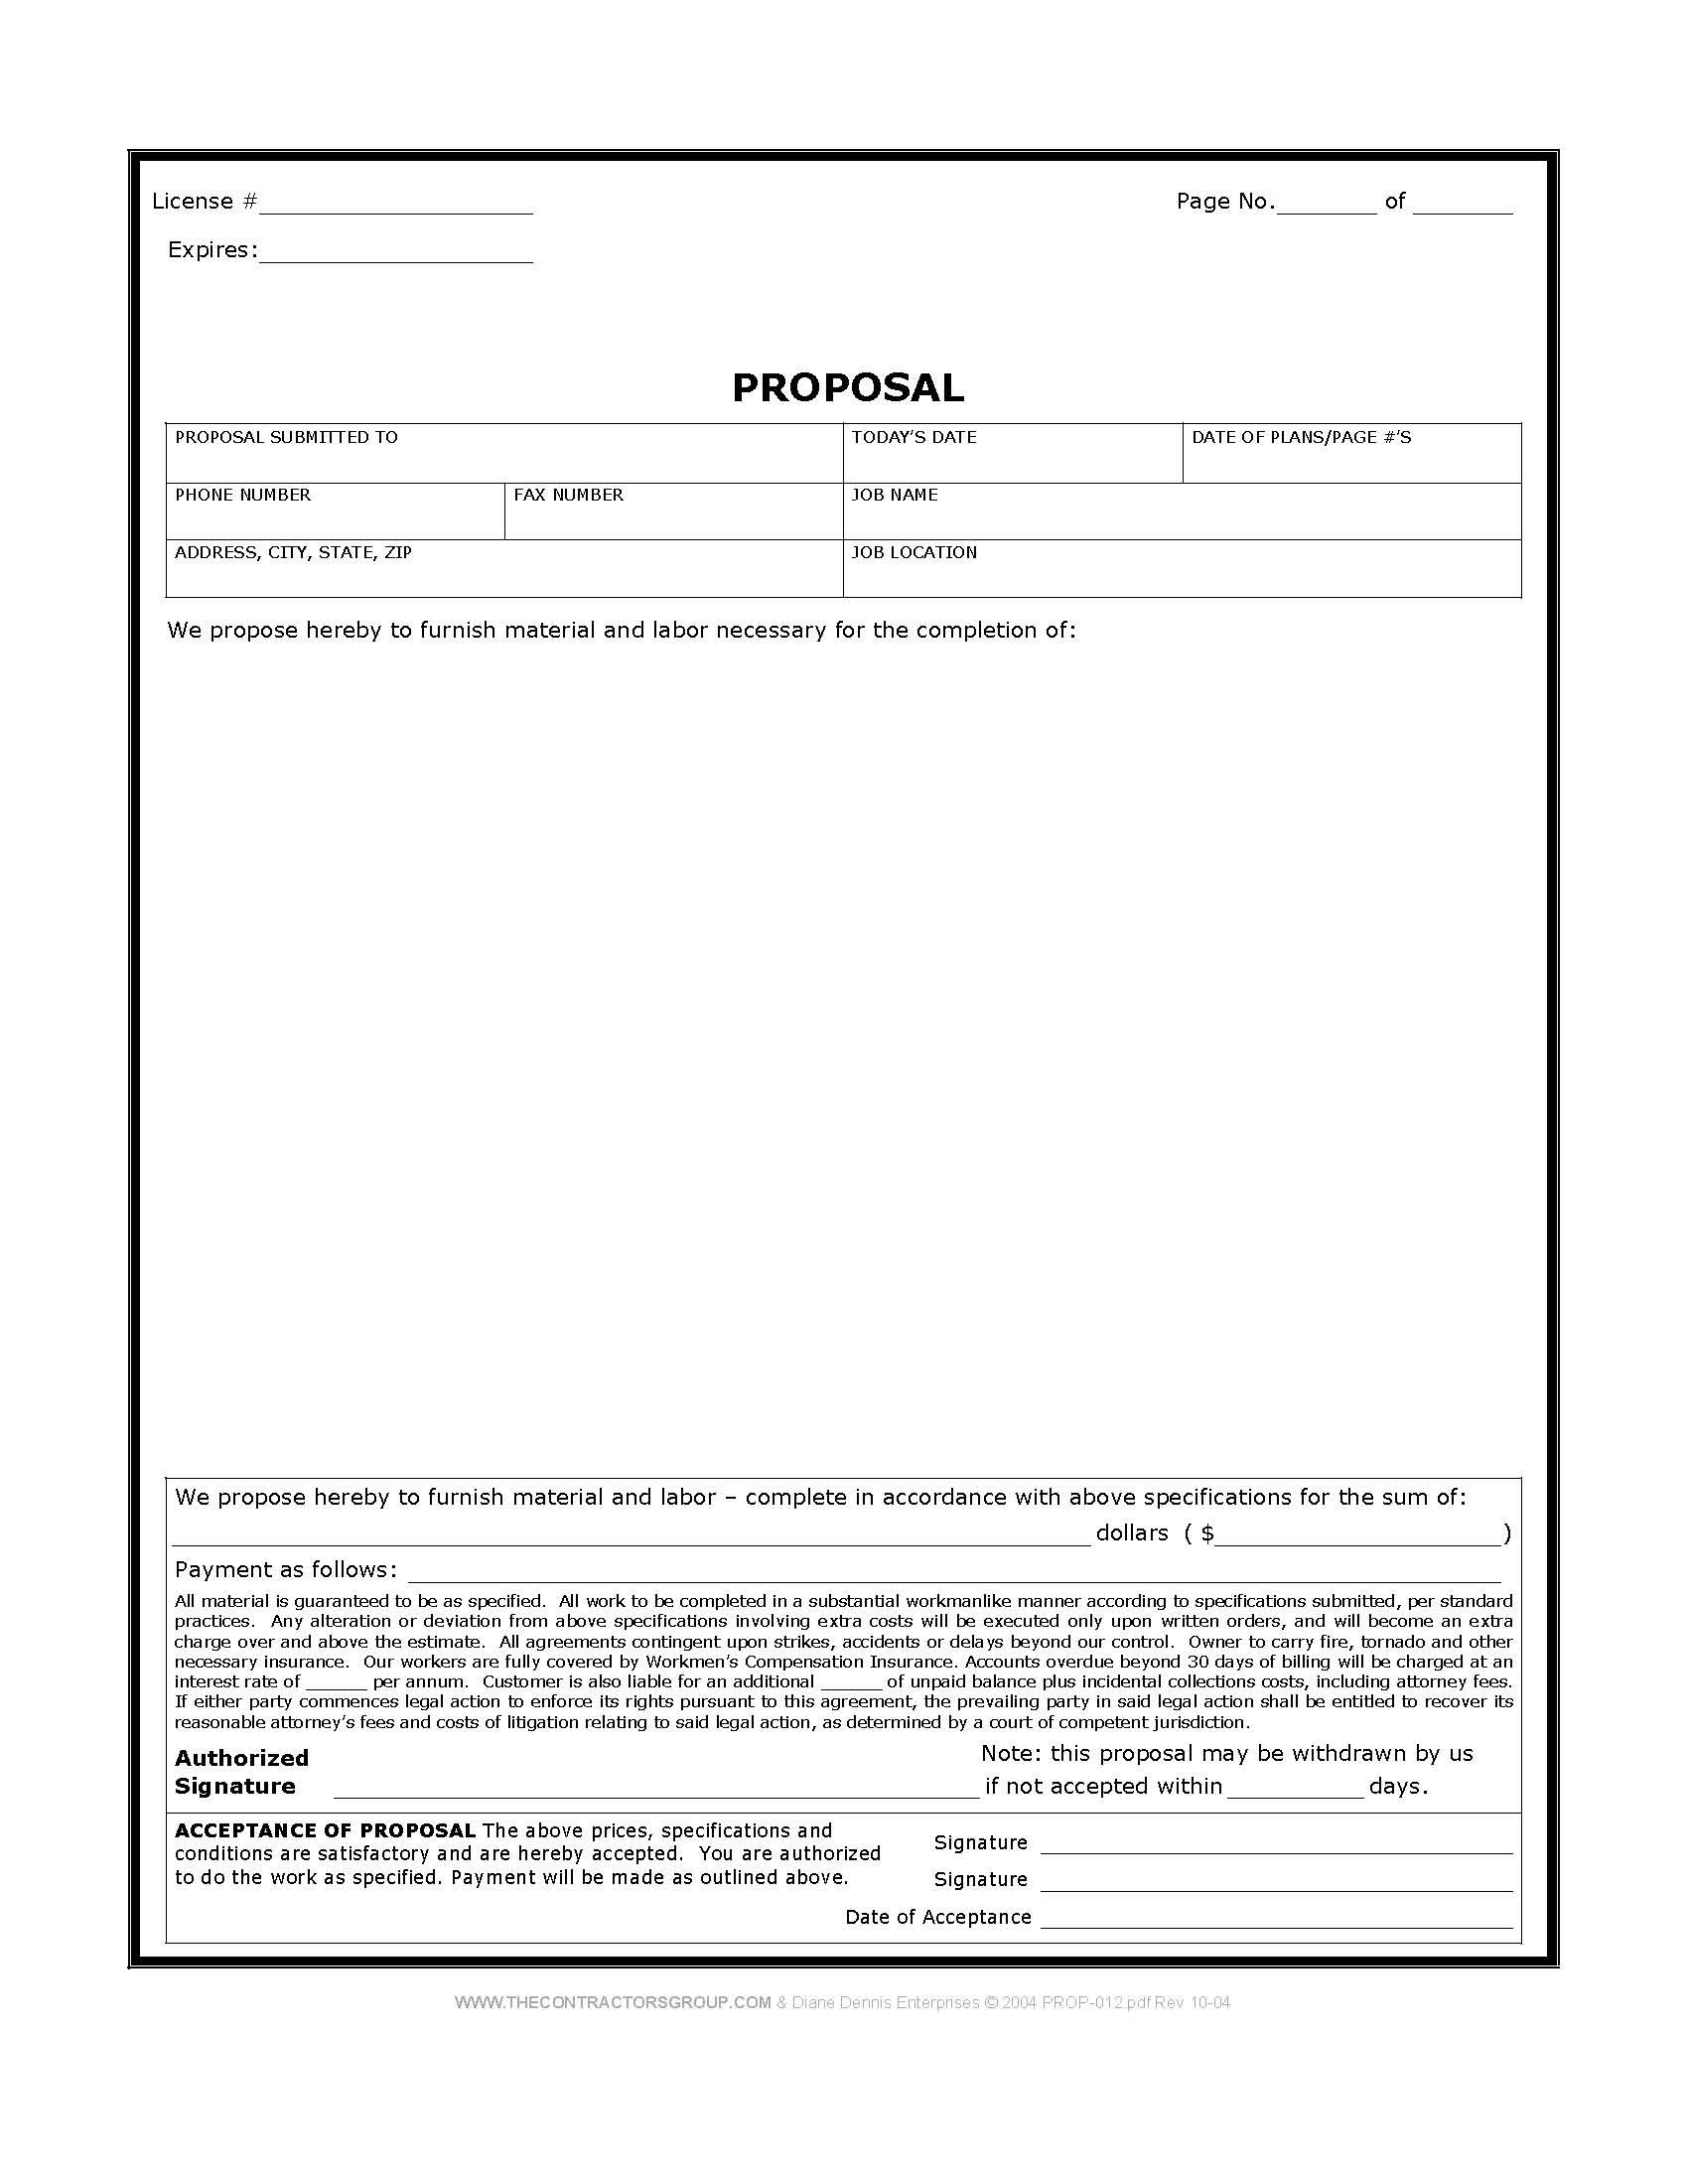 Contract Proposal Template Free Extraordinary Free Print Contractor Proposal Forms  Construction Proposal Form .